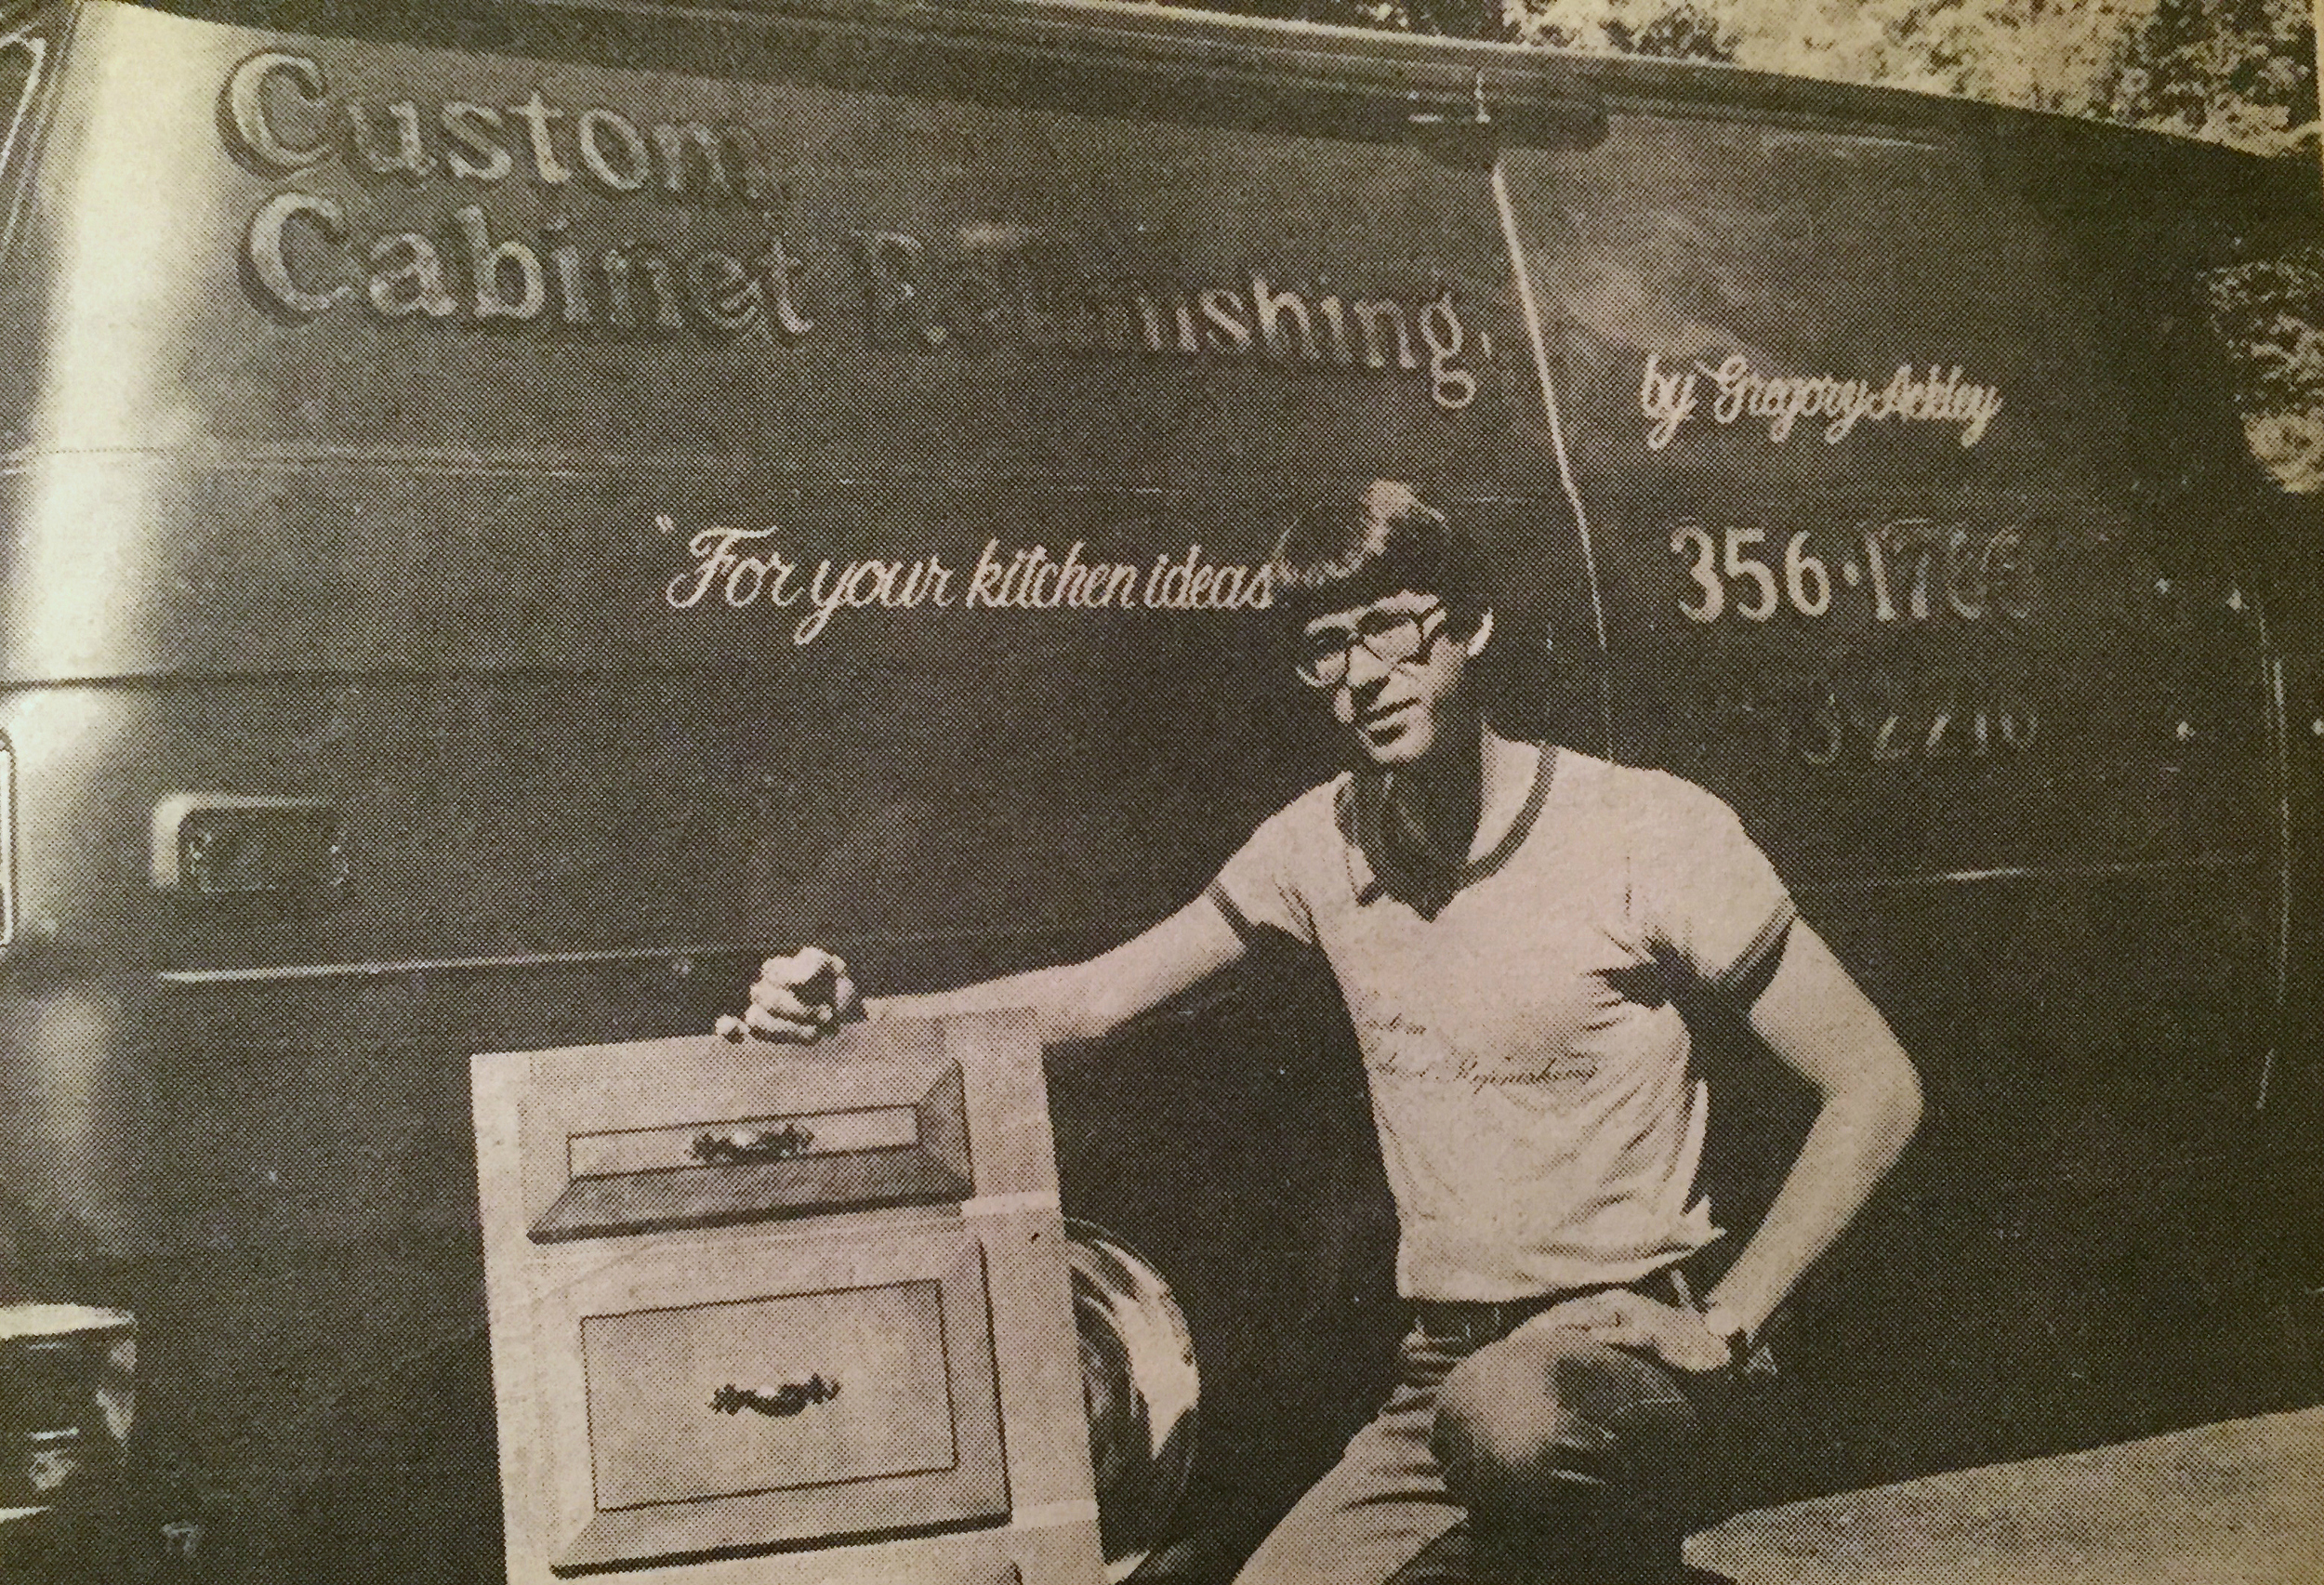 Greg Ackley - Custom Cabinet Refinishing 1971